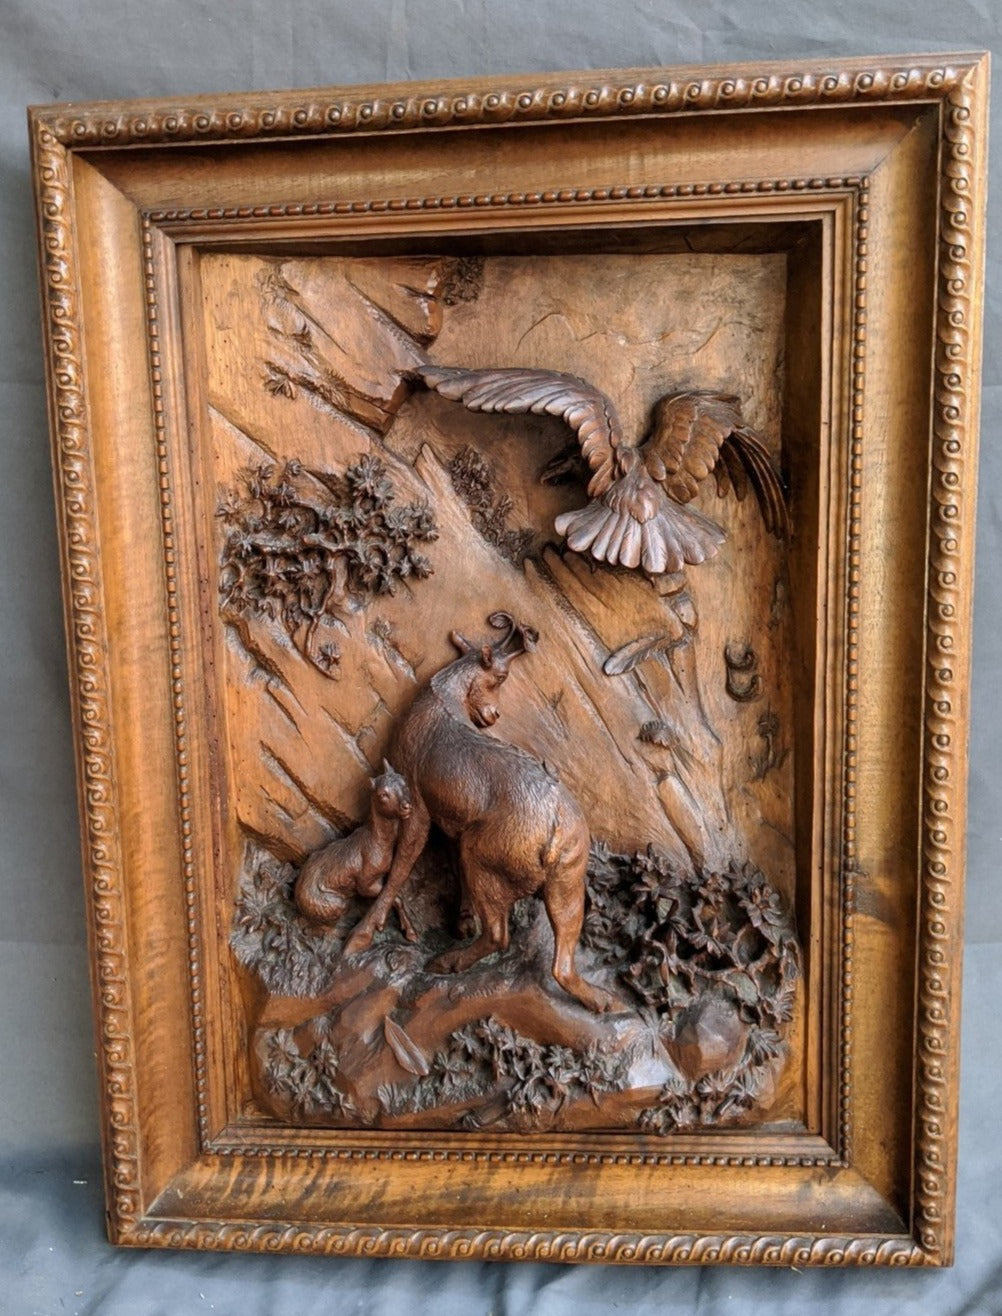 CARVED PLAQUE WITH GOATS AND EAGLES 19TH CENTURY